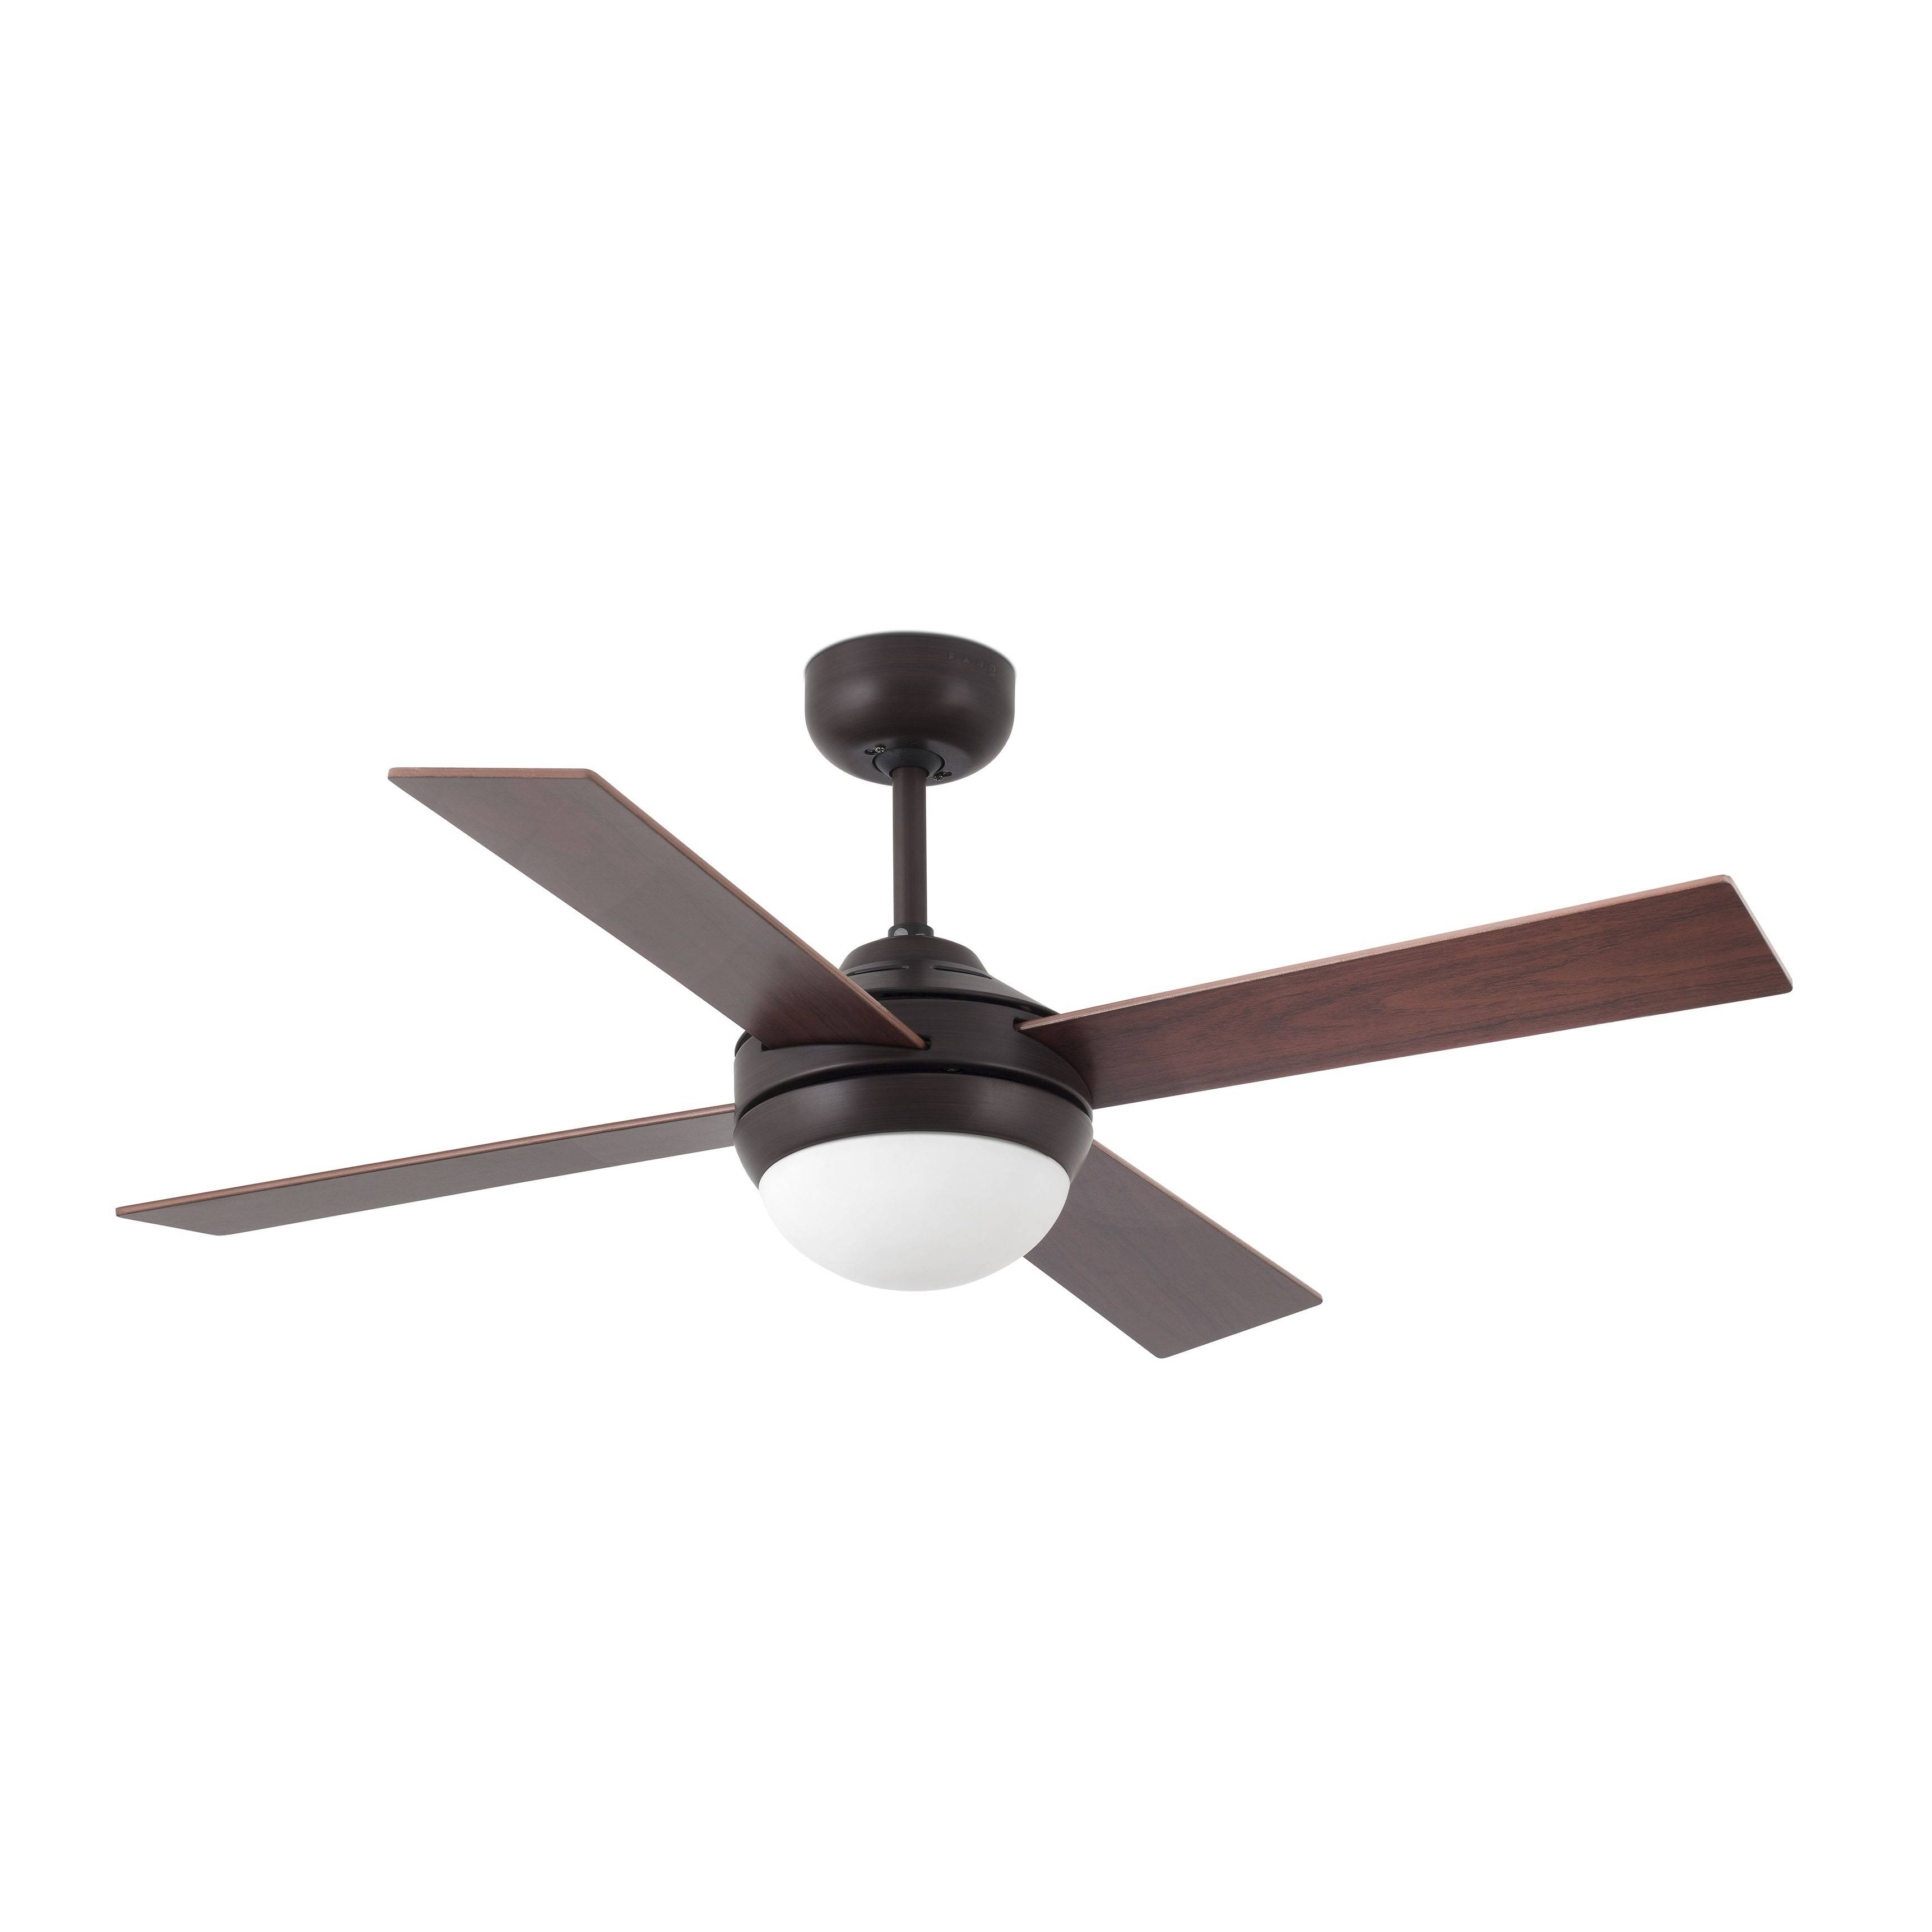 2 Light Small Ceiling Fan Wood Rust With Light